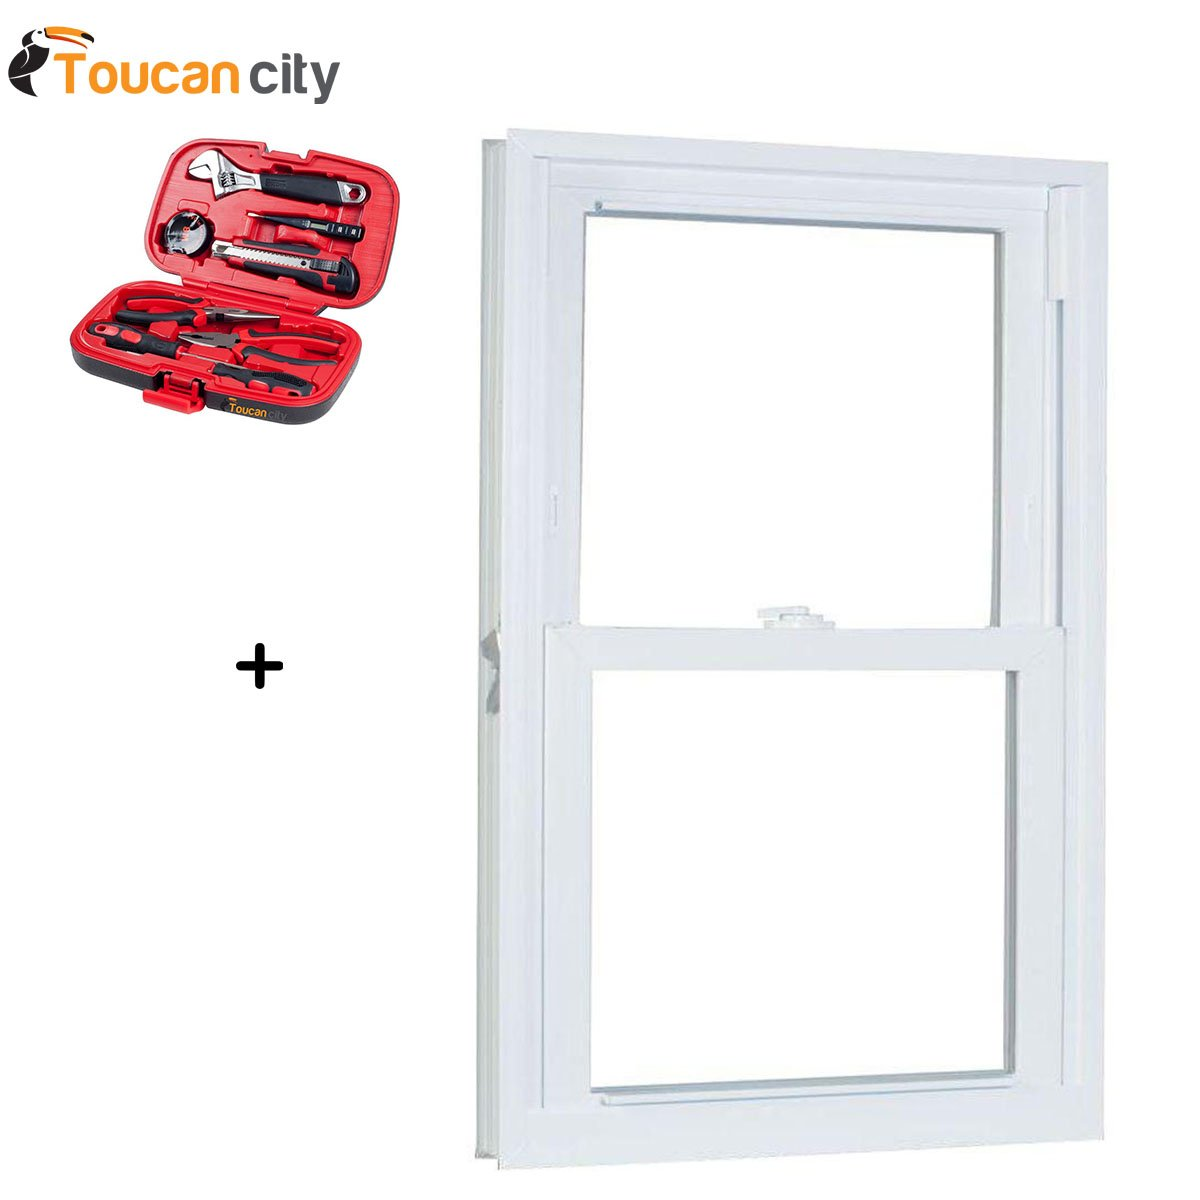 Toucan City Tool Kit (9-Piece) and American Craftsman 29.75 in. x 53.25 in. 70 Series Pro Double Hung White Vinyl Window with Buck Frame 3054786